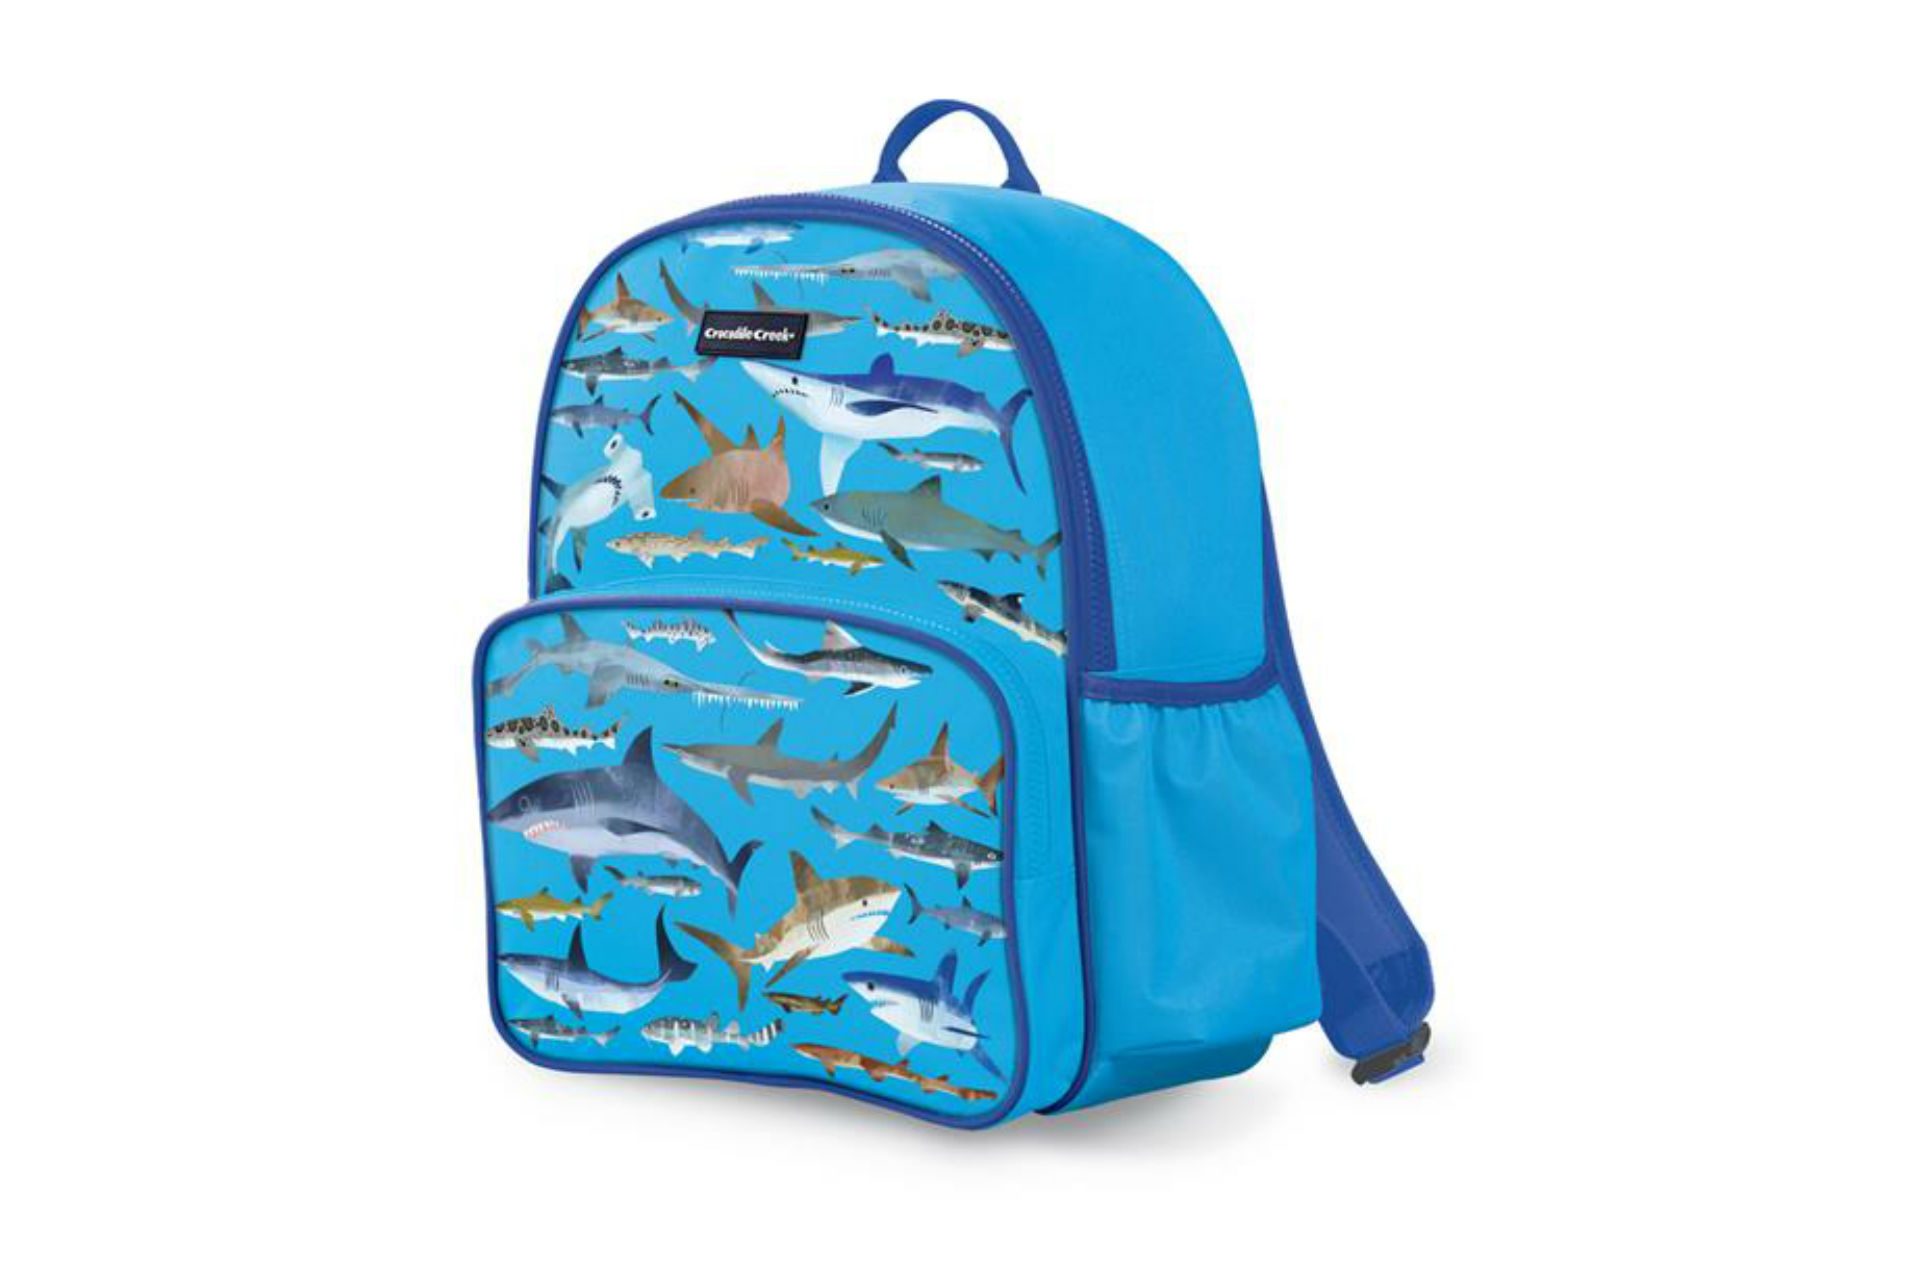 blue backpack with sharks on it